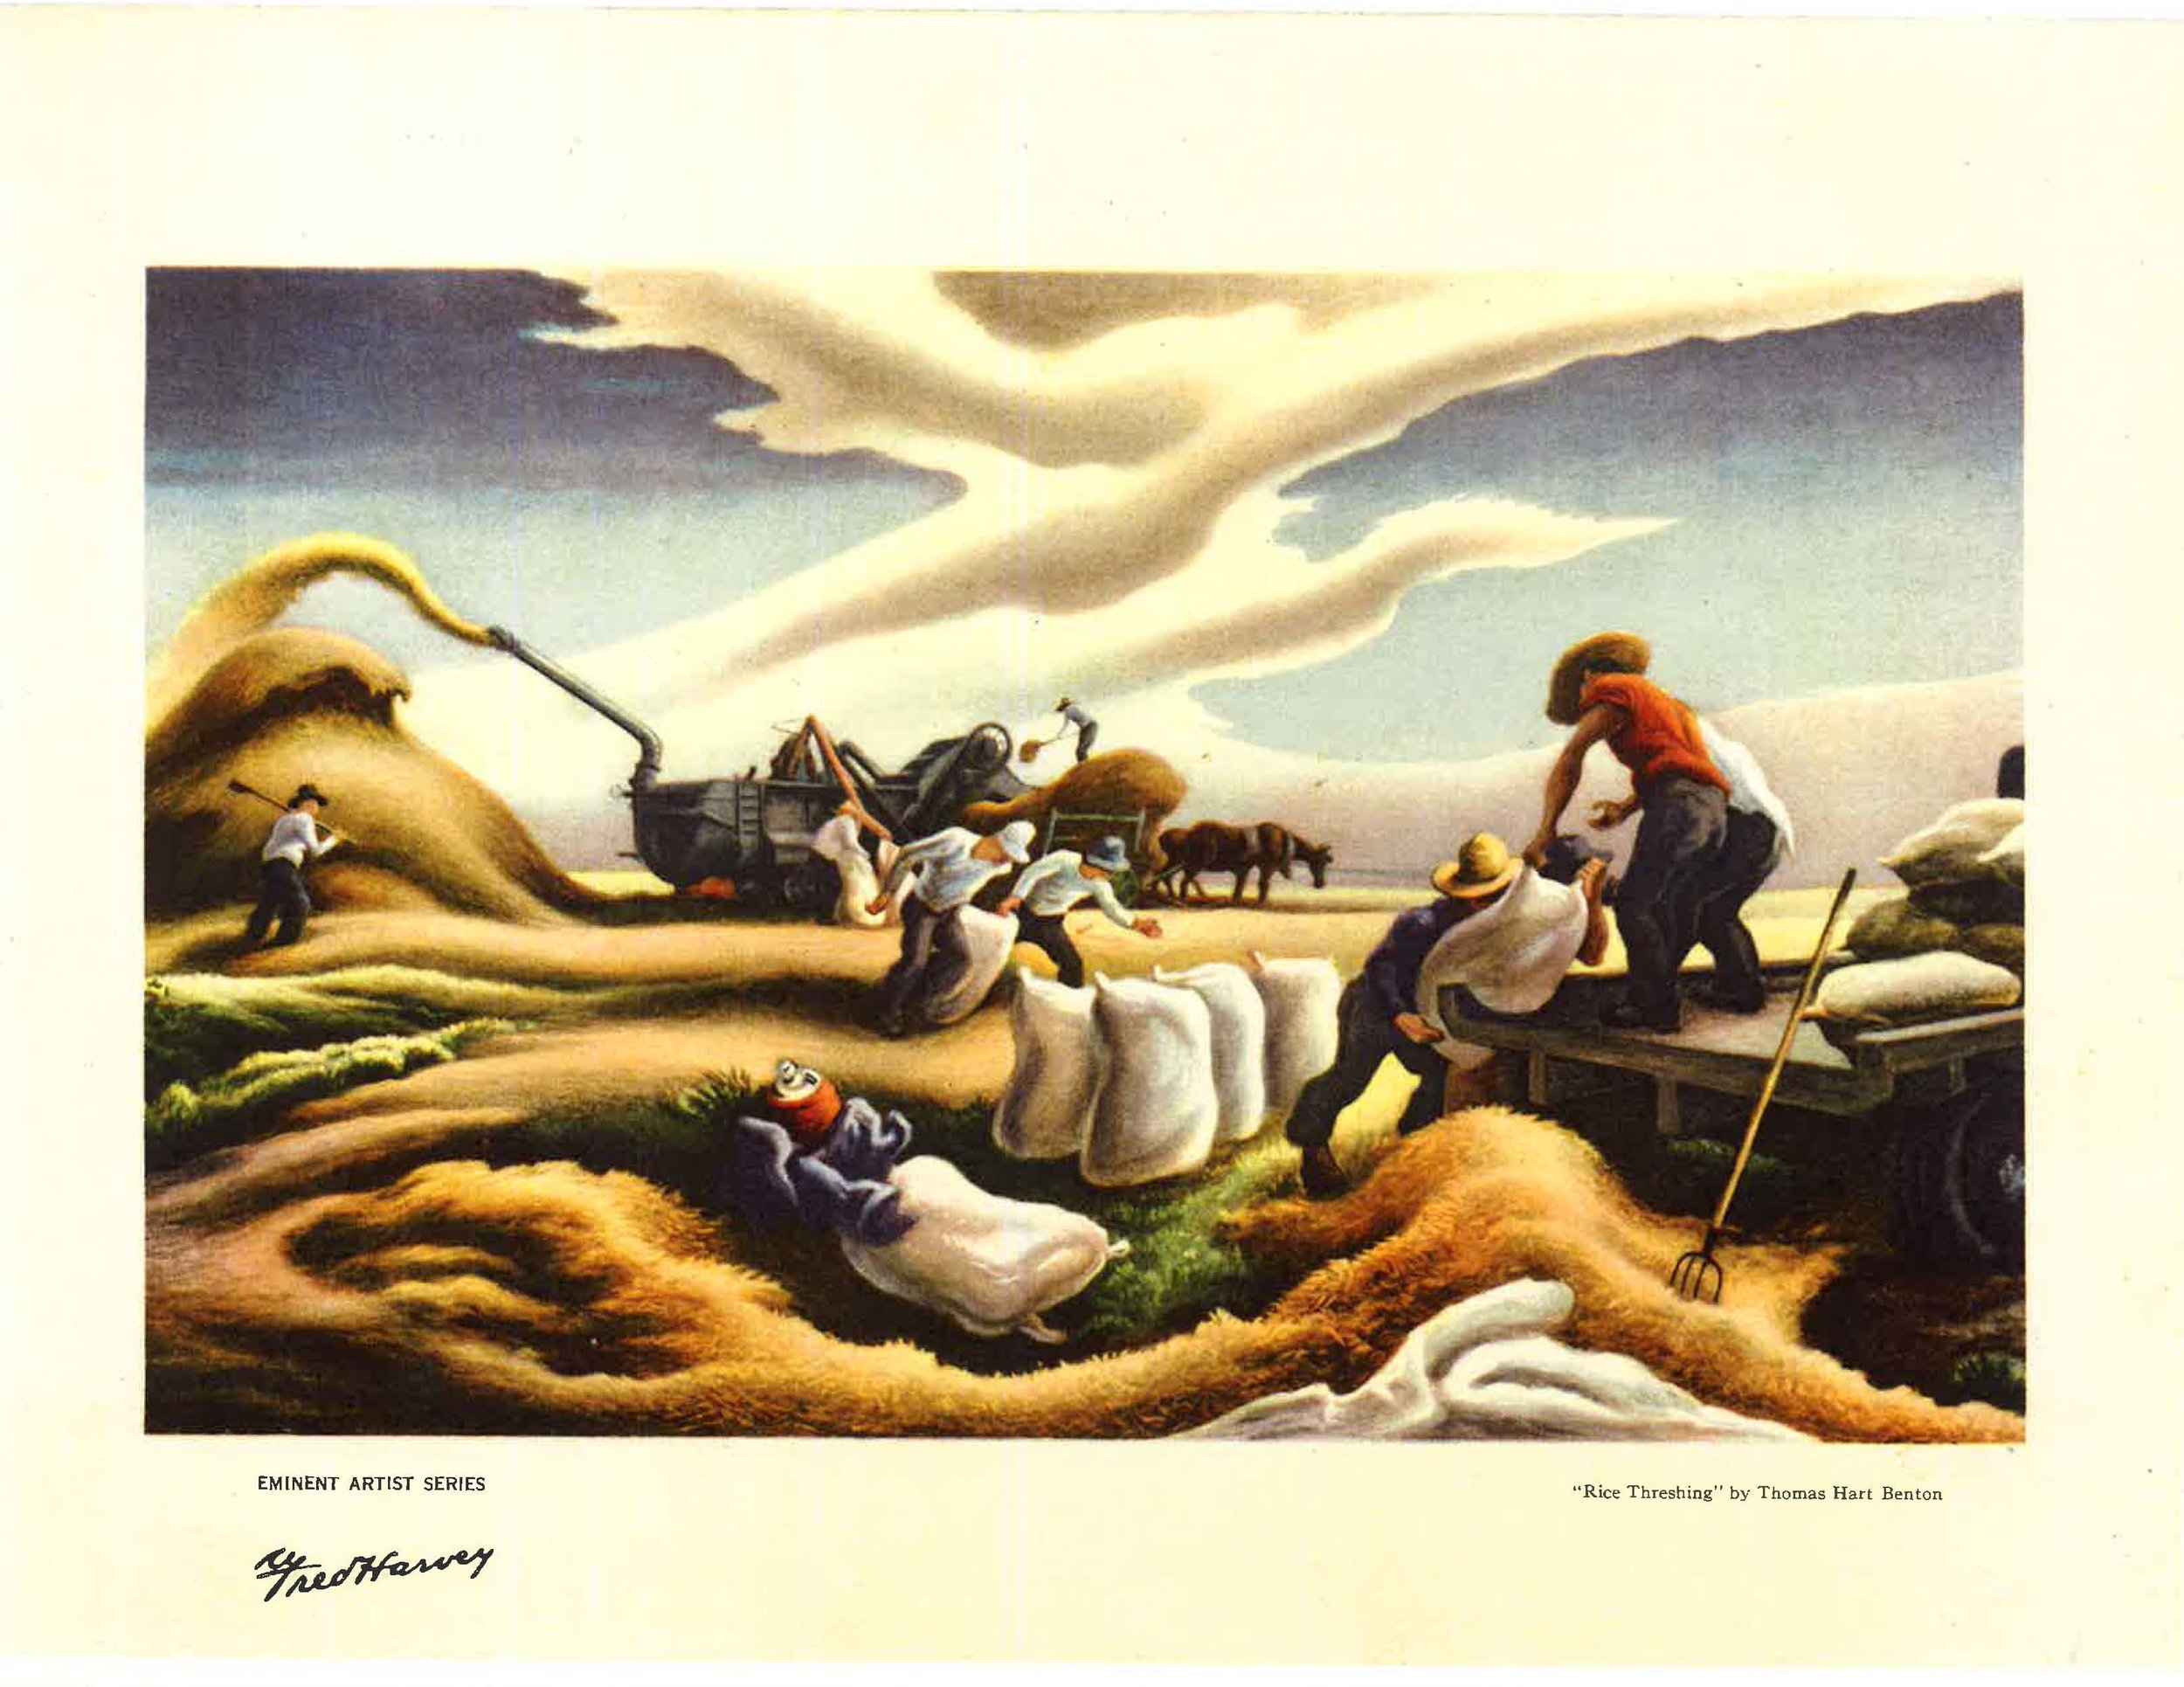 Santa Fe Fred Harvey Rice Threshing_Page_1.jpg